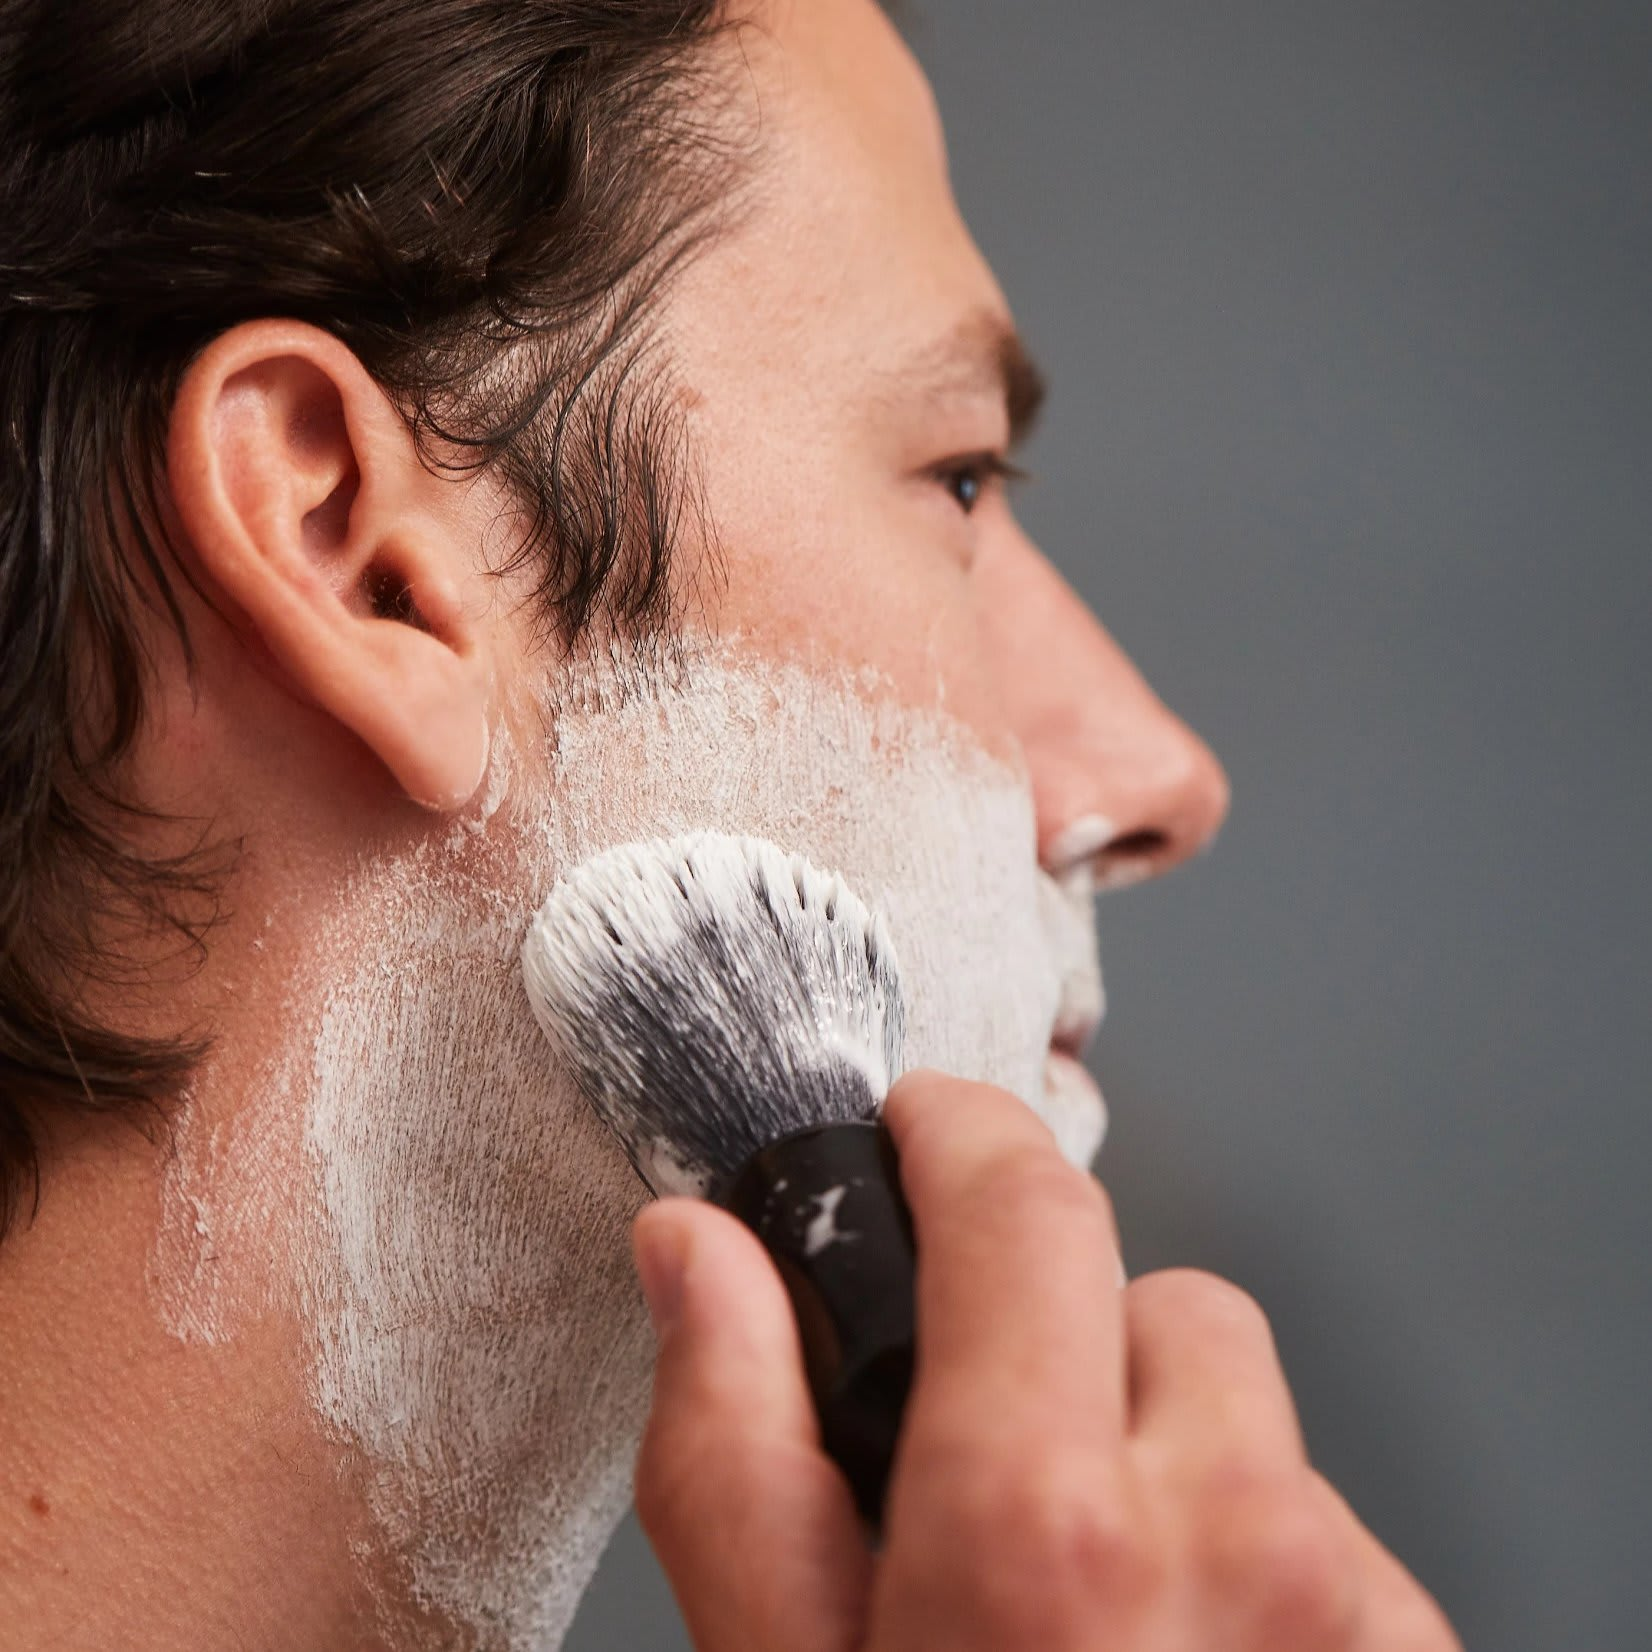 OneBlade shave brush applying shaving cream to face